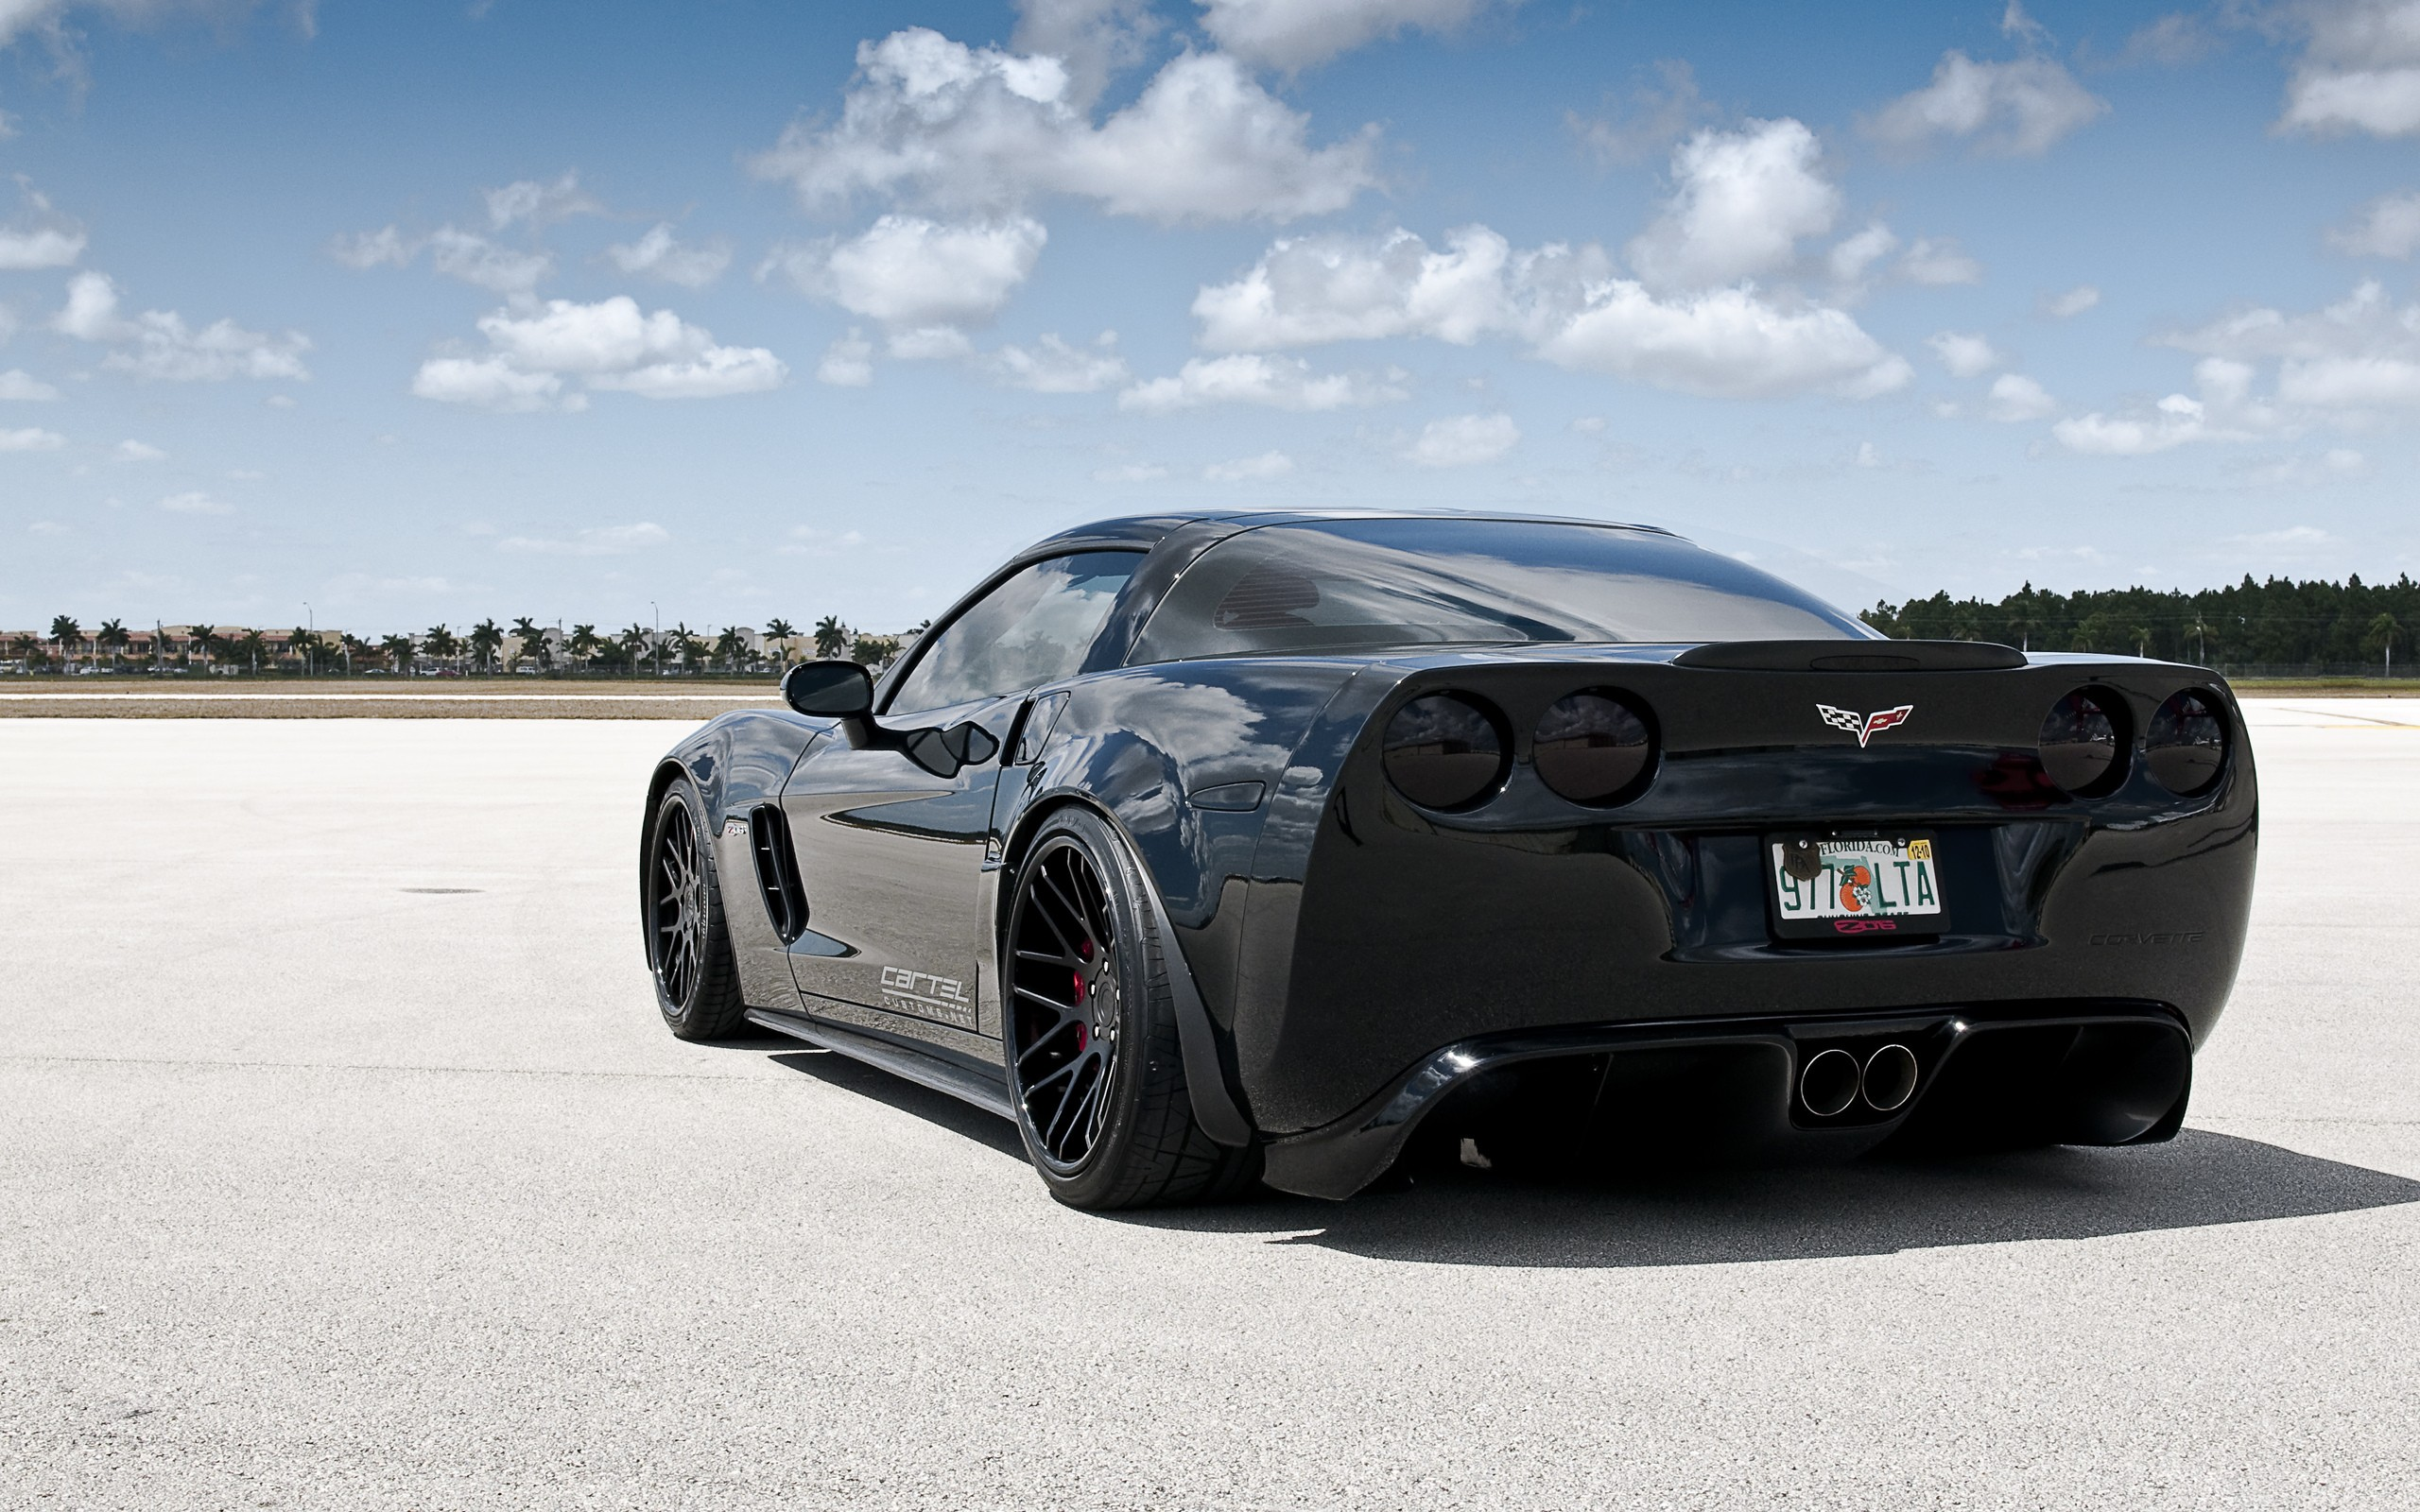 Black Cars Vehicles Supercars Tuning Chevrolet Corvette